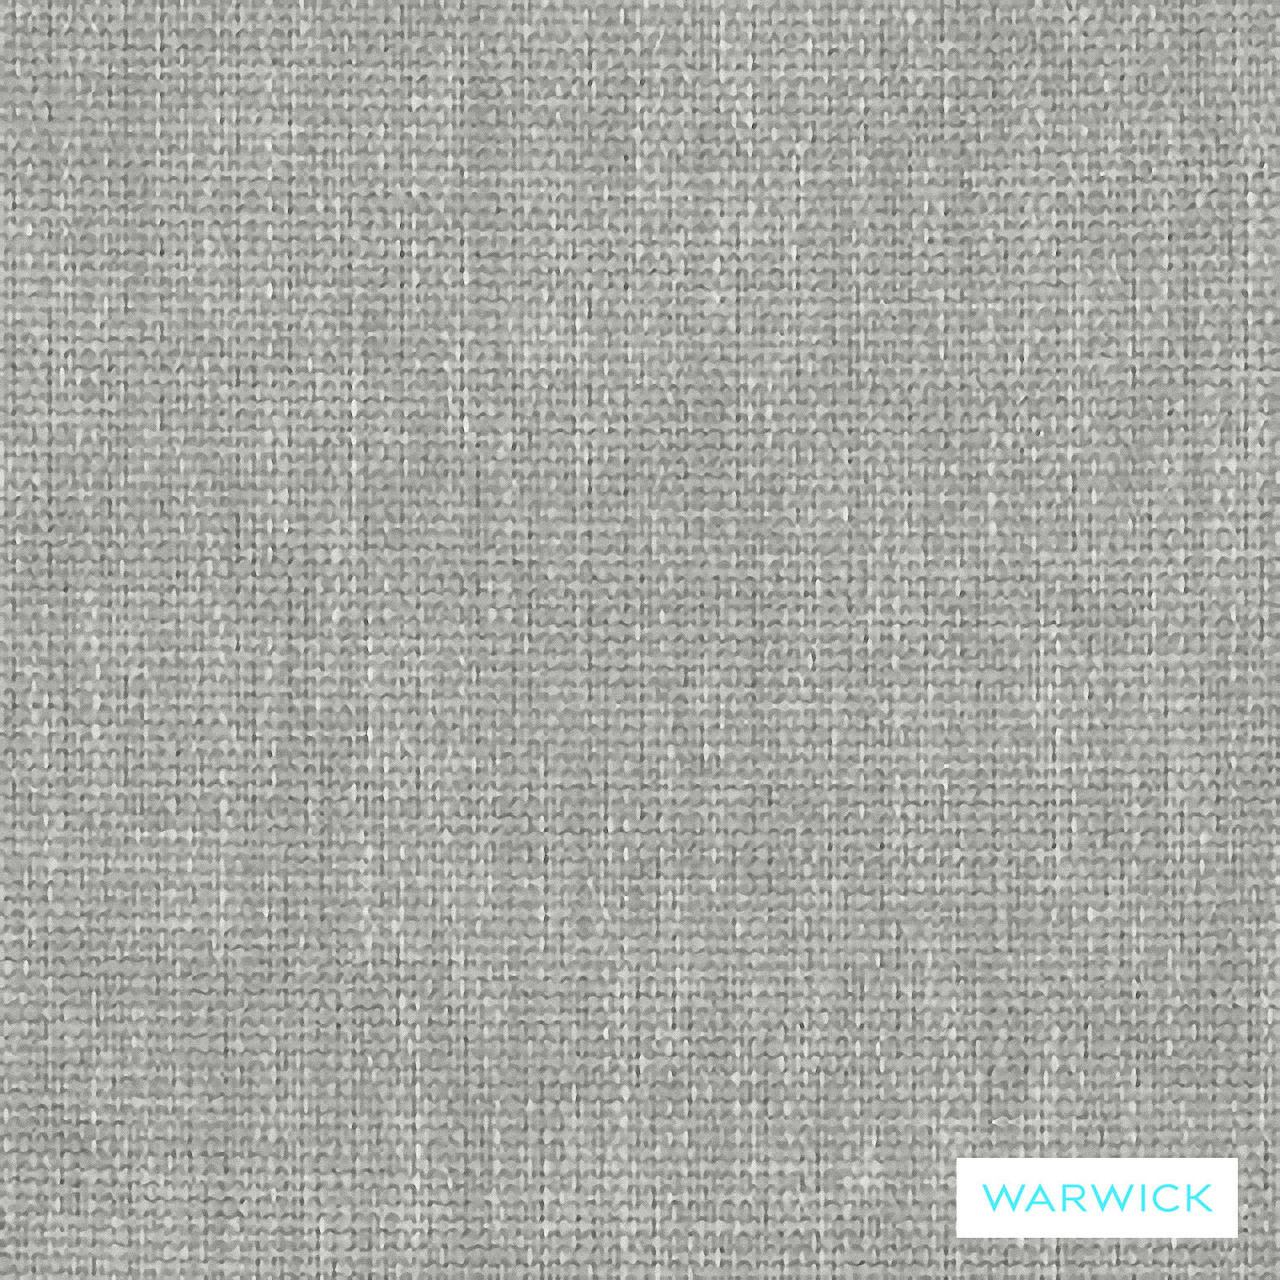 Warwick Keylargo Zinc  | Upholstery Fabric - Plain, White, Synthetic, Washable, Commercial Use, Halo, White, Standard Width